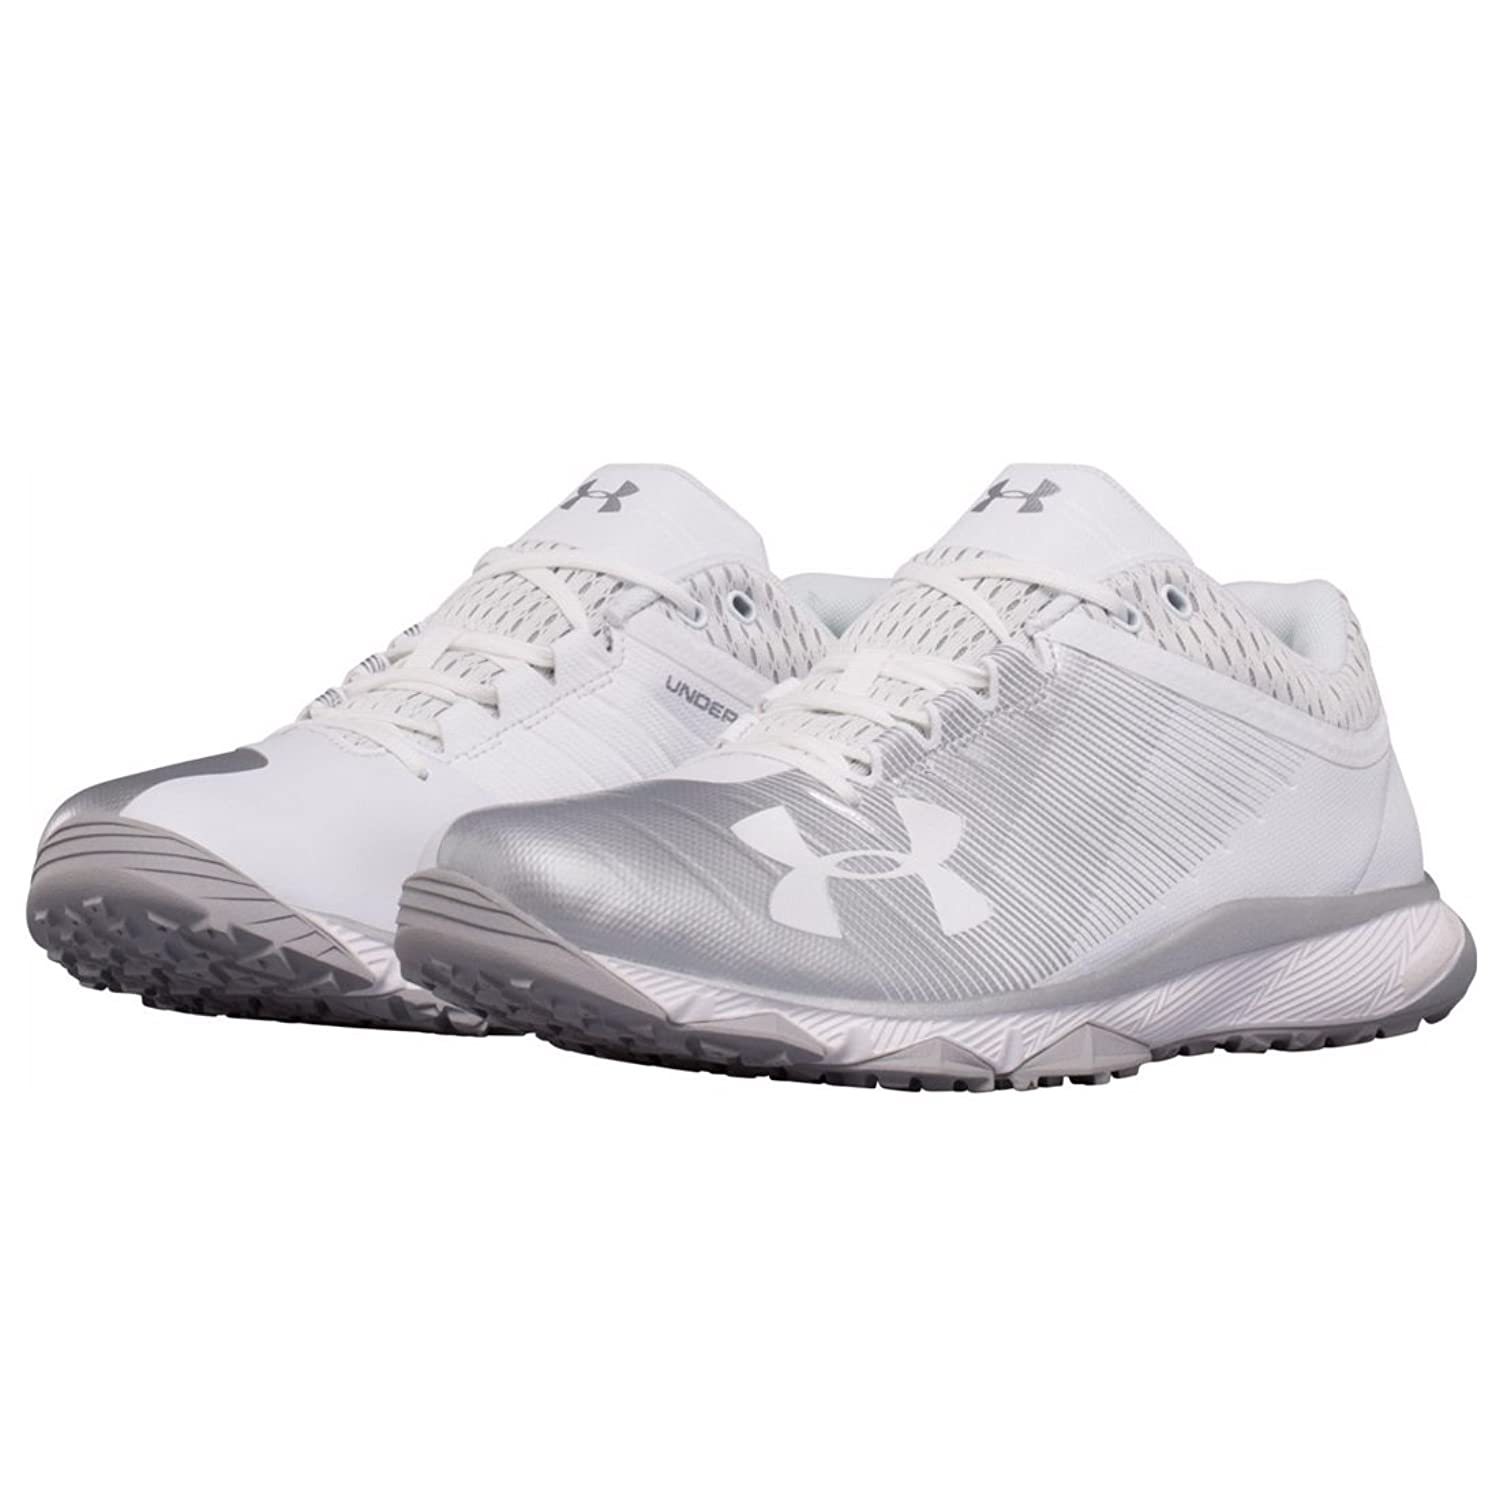 UNDER ARMOUR UA YARD TRAINER シューズ (3000356-100) [並行輸入品] B0762K23HW27.5 cm